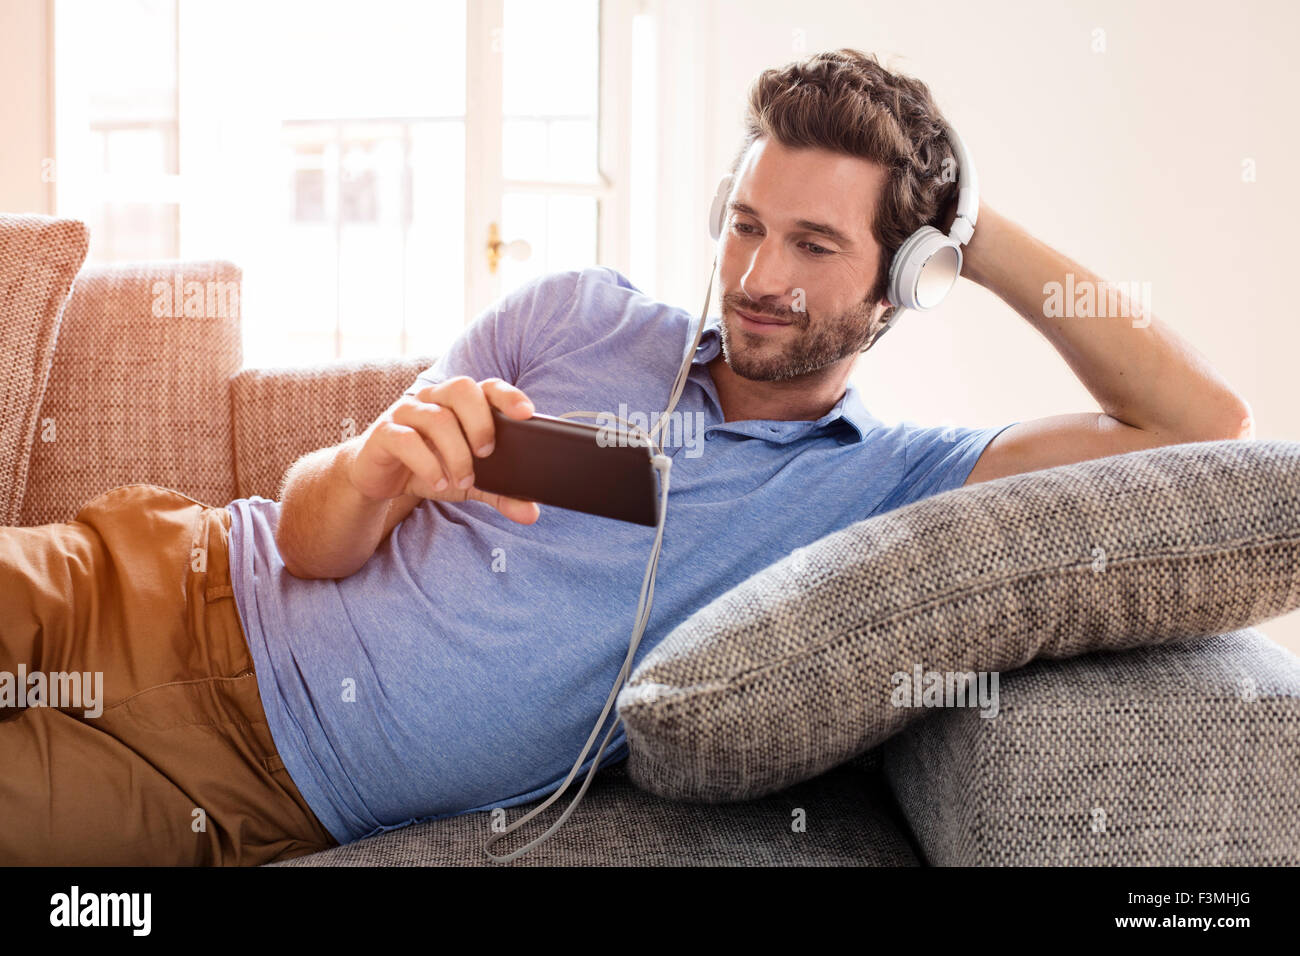 Man at home watches a movie on cell phone - Stock Image